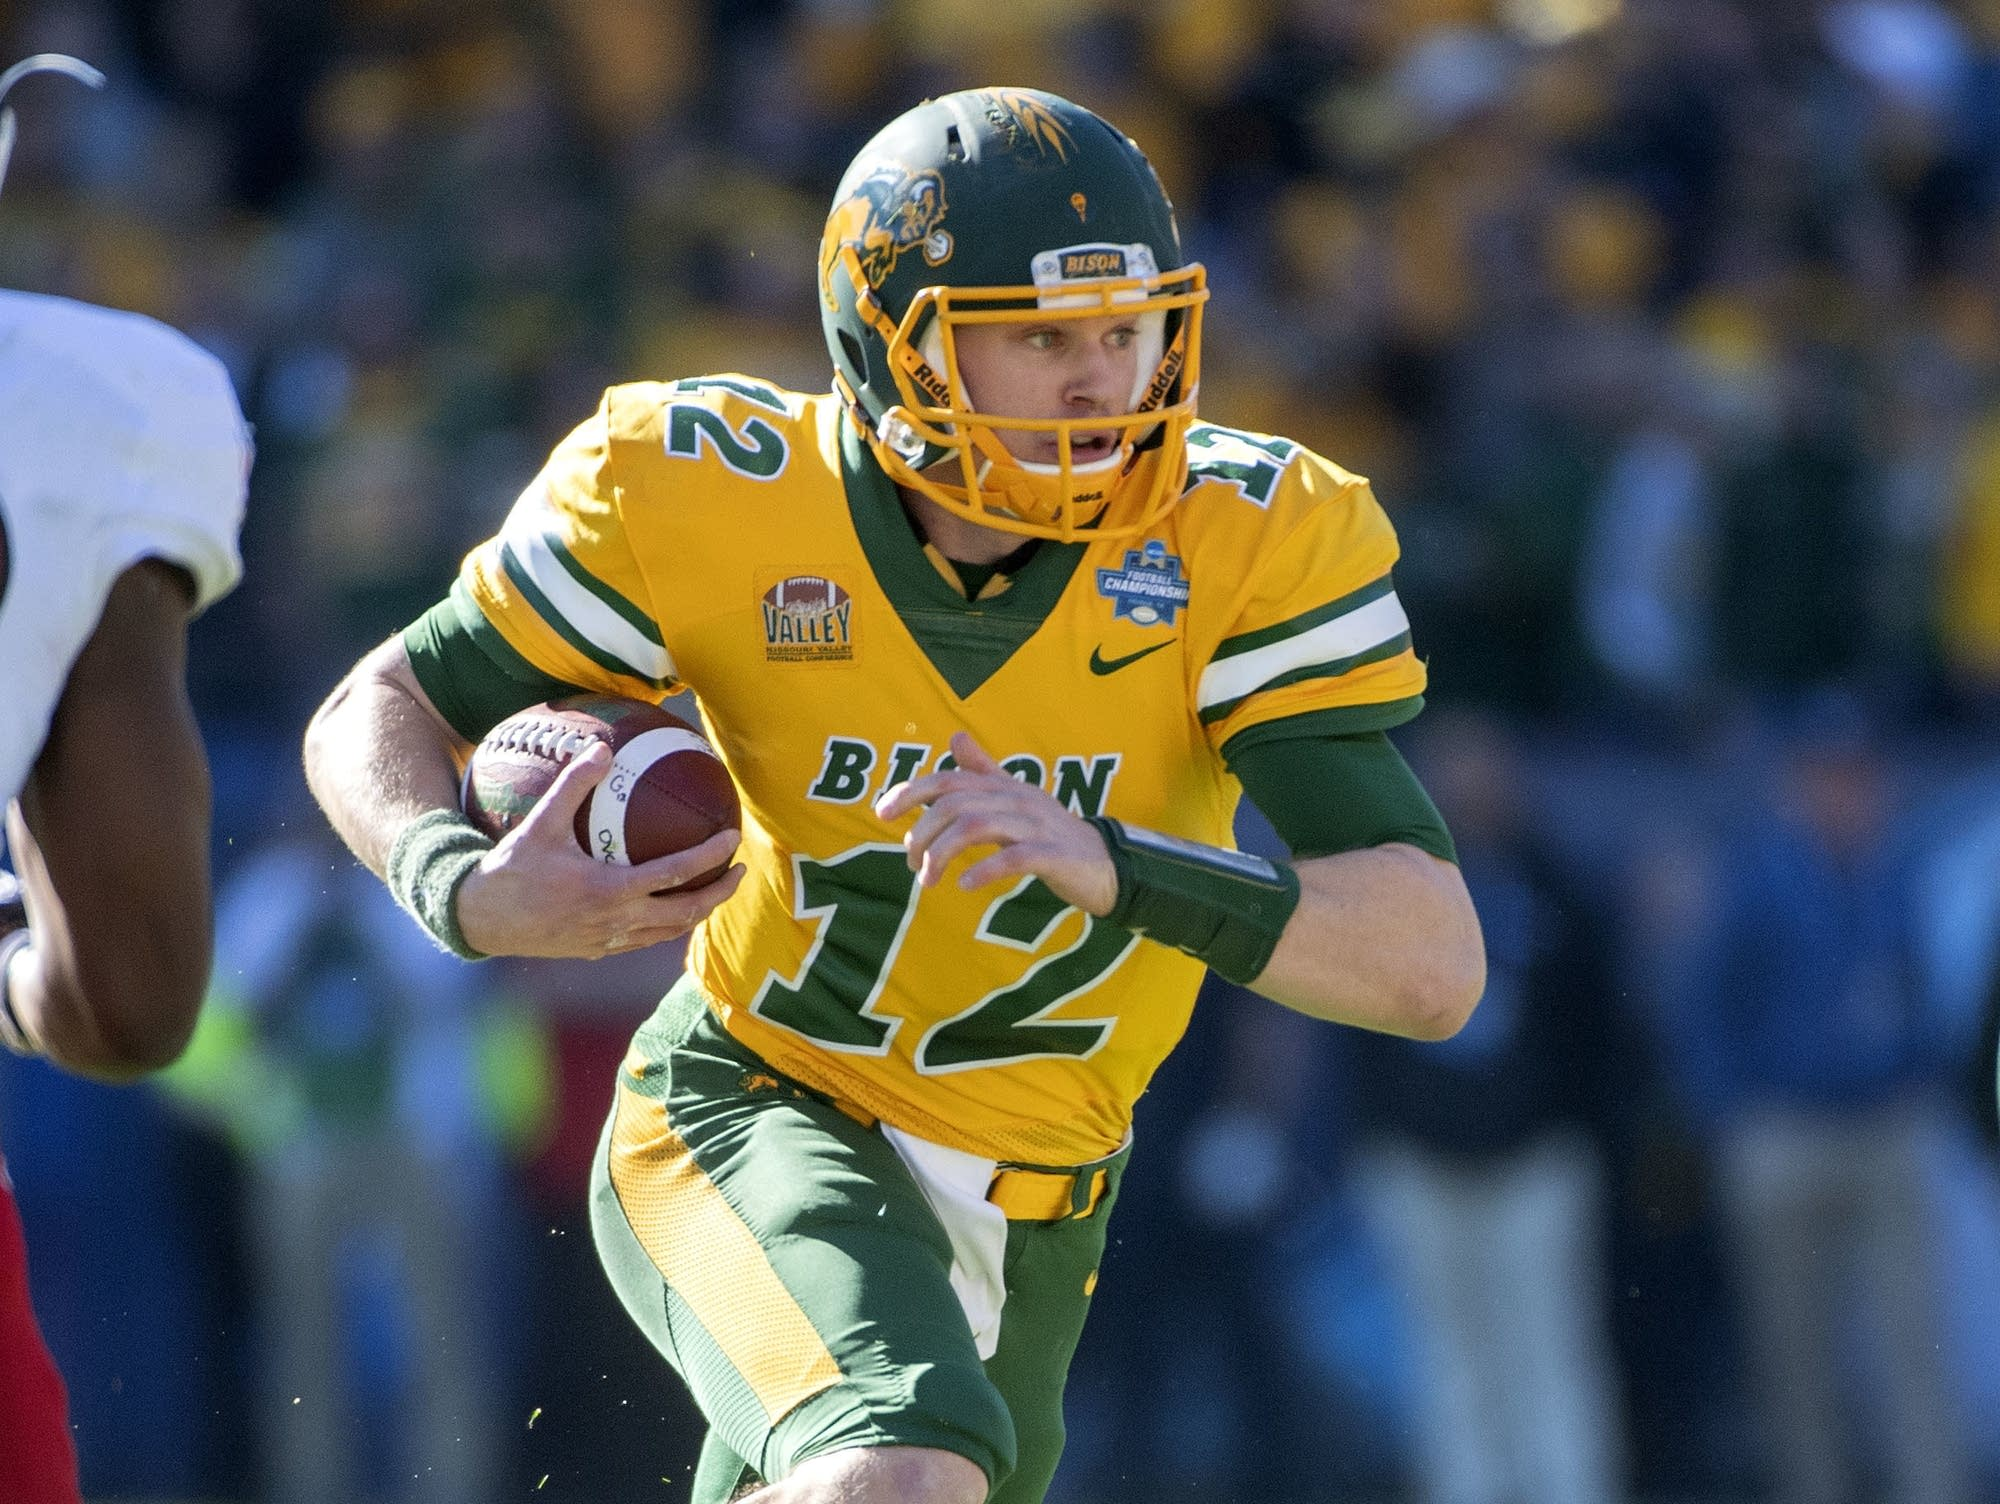 College Football North Dakota State Wins 7th Fcs Title Mpr News